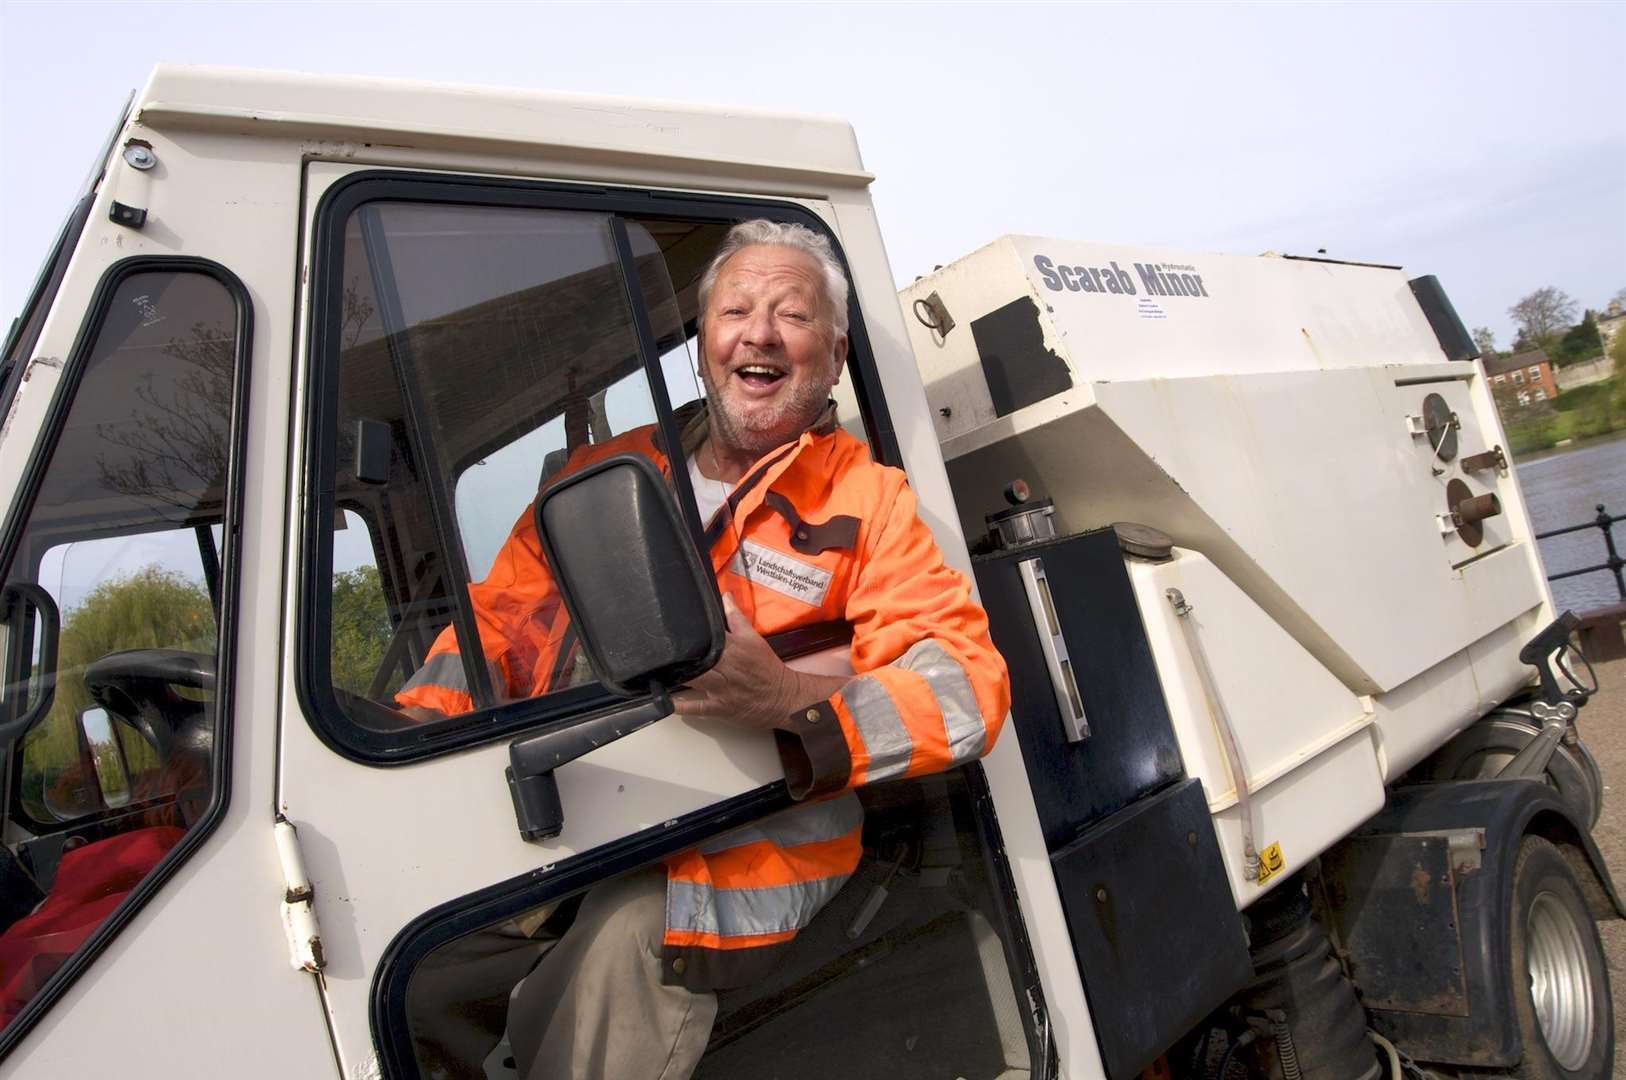 A famous former Honoured Citizen, the late Peter Gillings and his Scrab Minor Roadsweeper, which he offered to Diss Town Council for £4,000 in 2013.